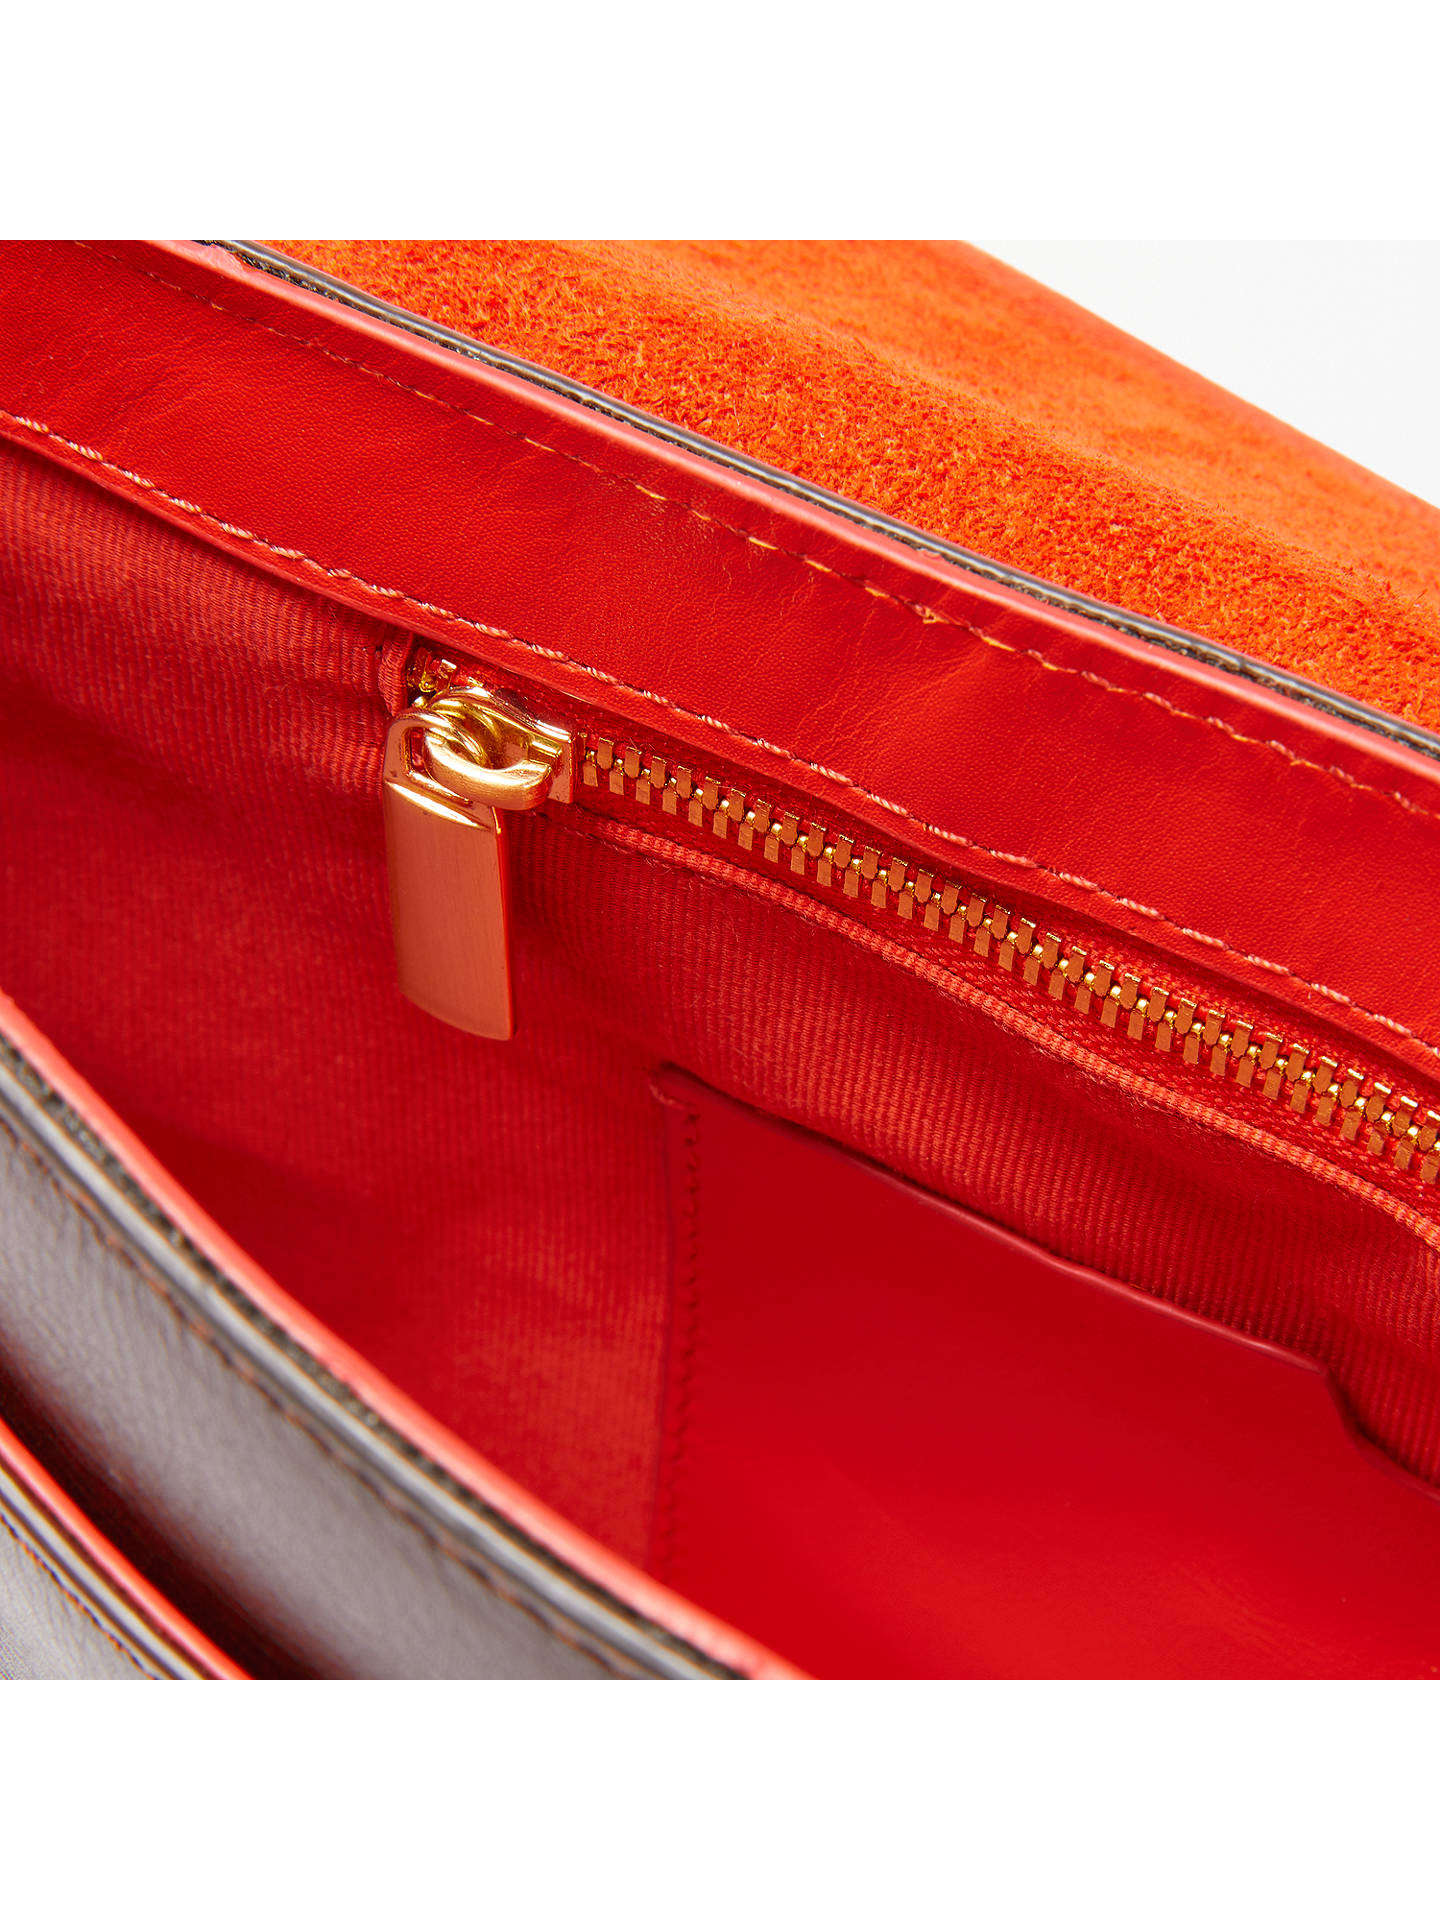 Buy John Lewis & Partners Eden Leather Slim East/West Cross Body Bag, Multi/Orange Online at johnlewis.com